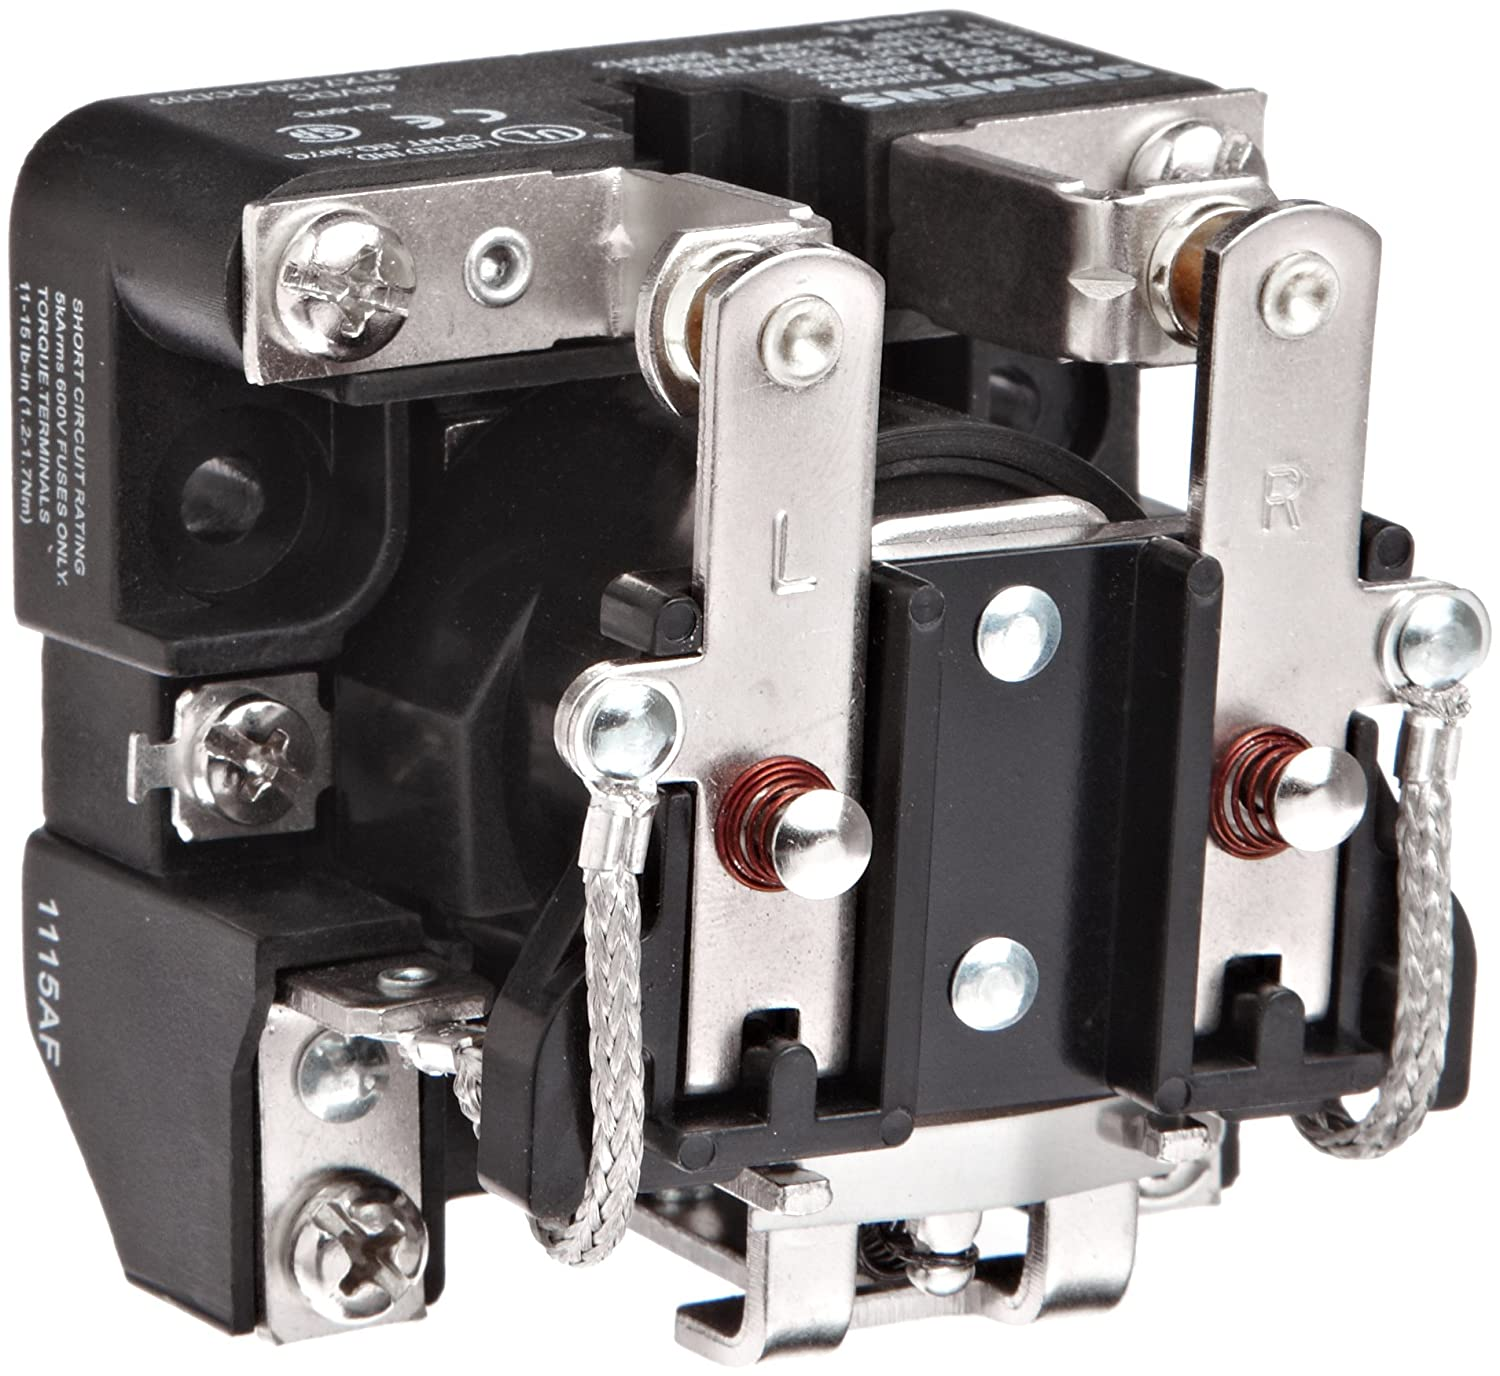 240VAC Coil Voltage Siemens 3TX7130-0DH13 Basic Plug In Open Power Relay 40A Contact Rating DPDT Contacts